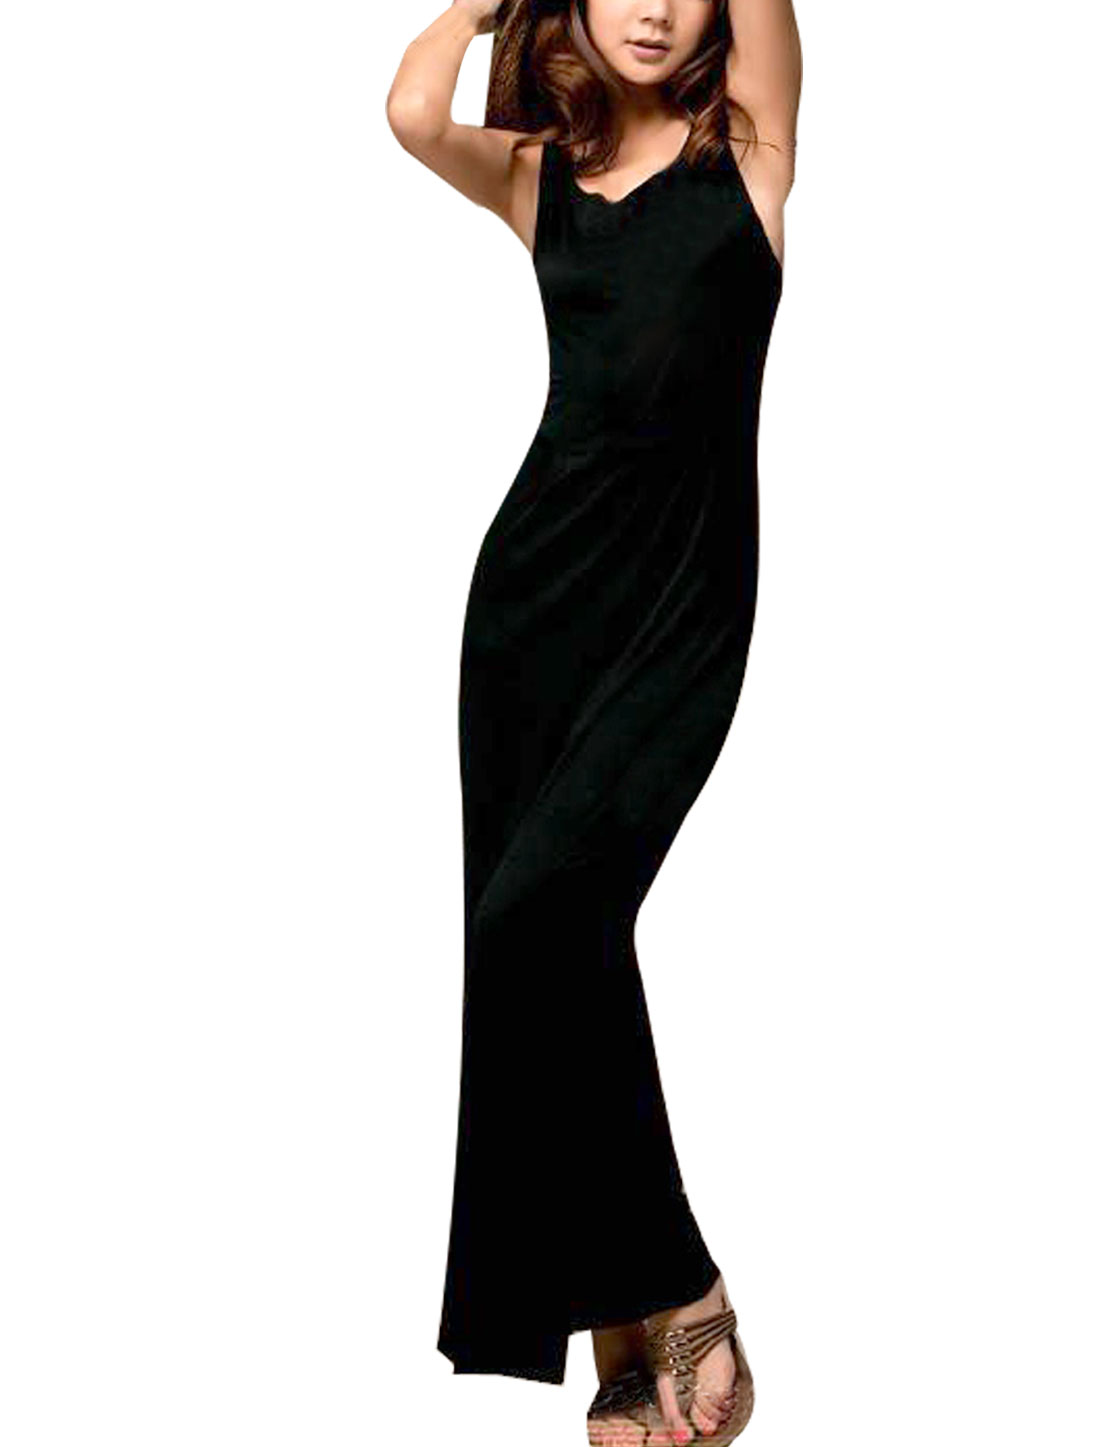 Ladies Scoop Neck Deep V-Back Sleeveless Maxi Dress Black XS